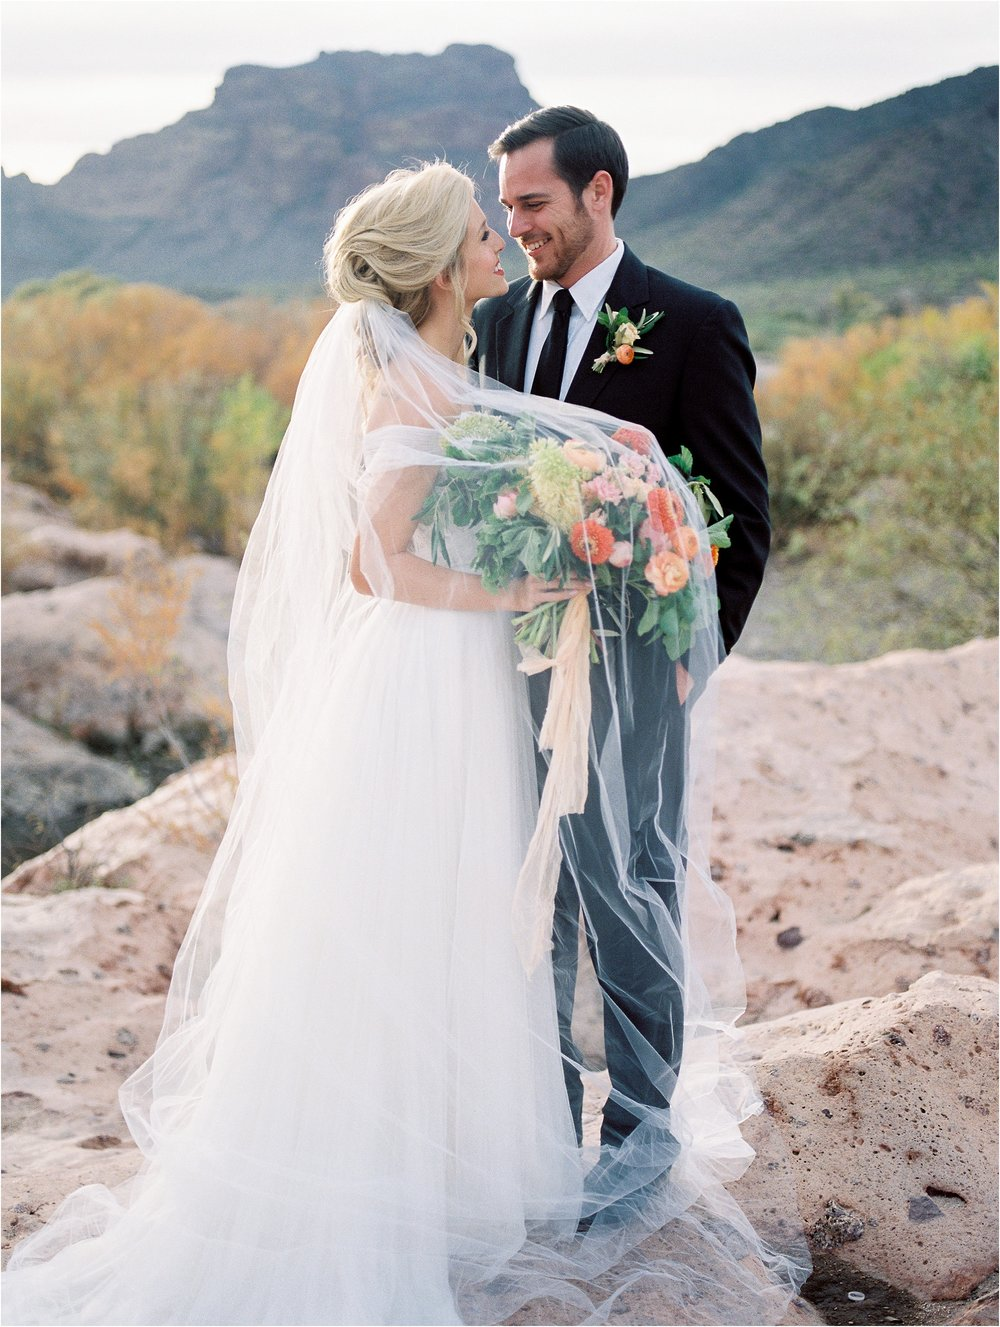 Sarah Jane Photography Film Hybrid Scottsdale Phoenix Arizona Destination Wedding Photographer Ally Ryan Desert_0001.jpg